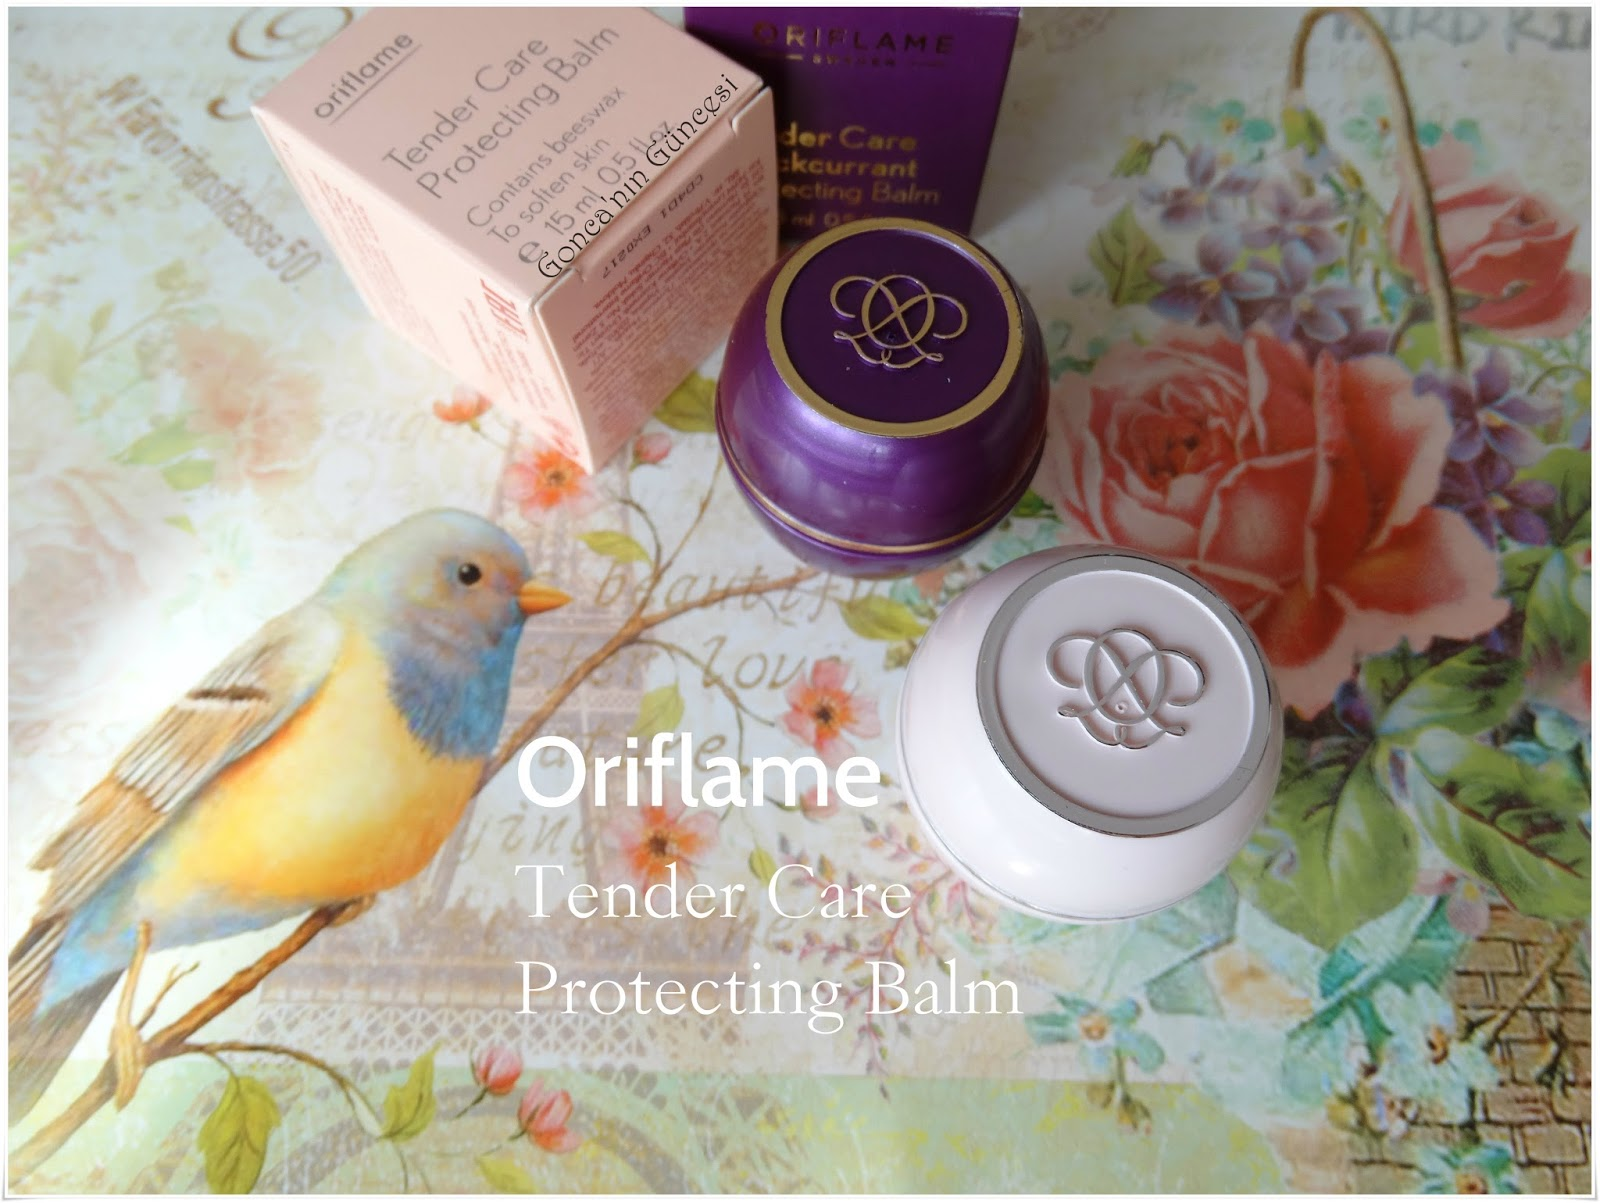 Oriflame Tender Care Protecting Balm Beeswax & Blackcurrant